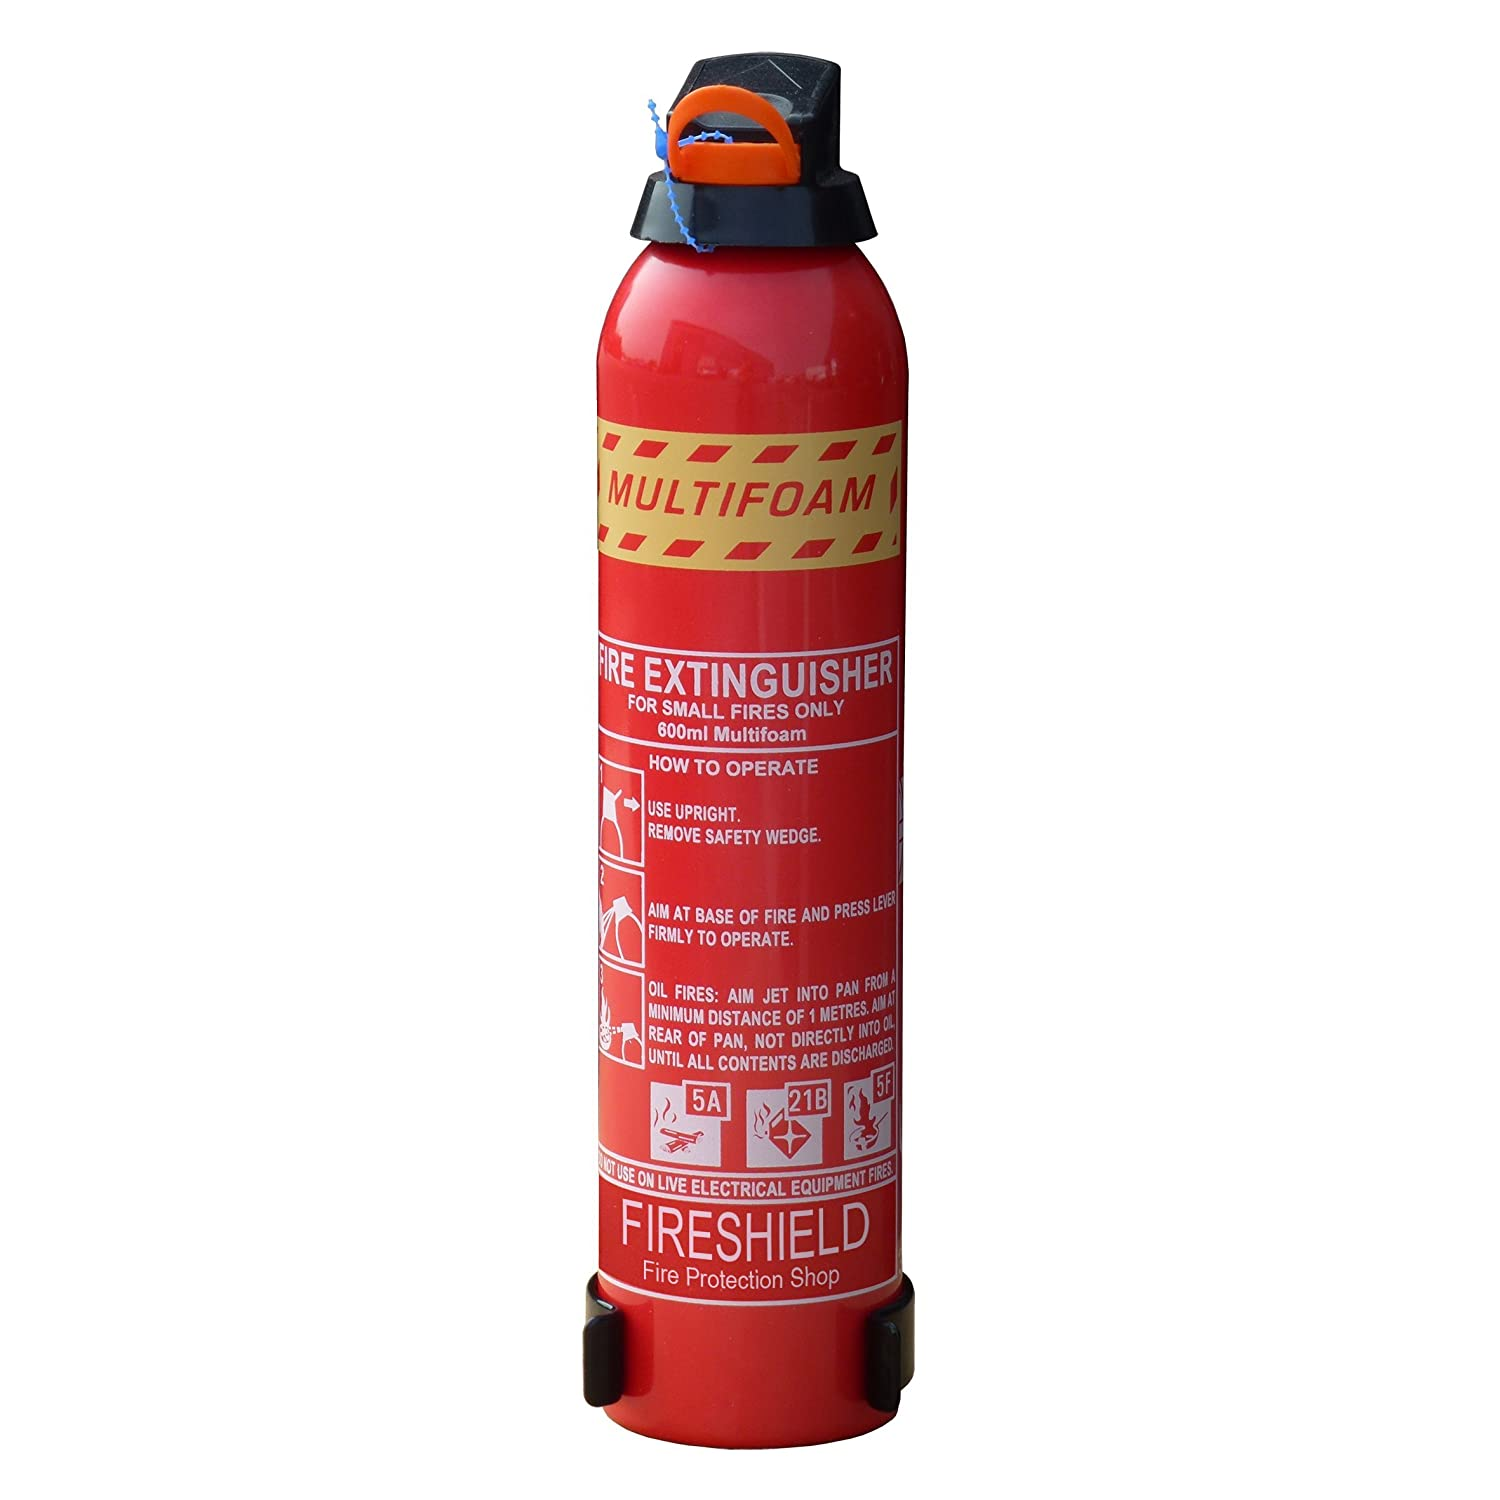 FireShield 600ml Cooking Fire Extinguisher - ABF MultiFOAM for Home & Leisure FireProtectionShop